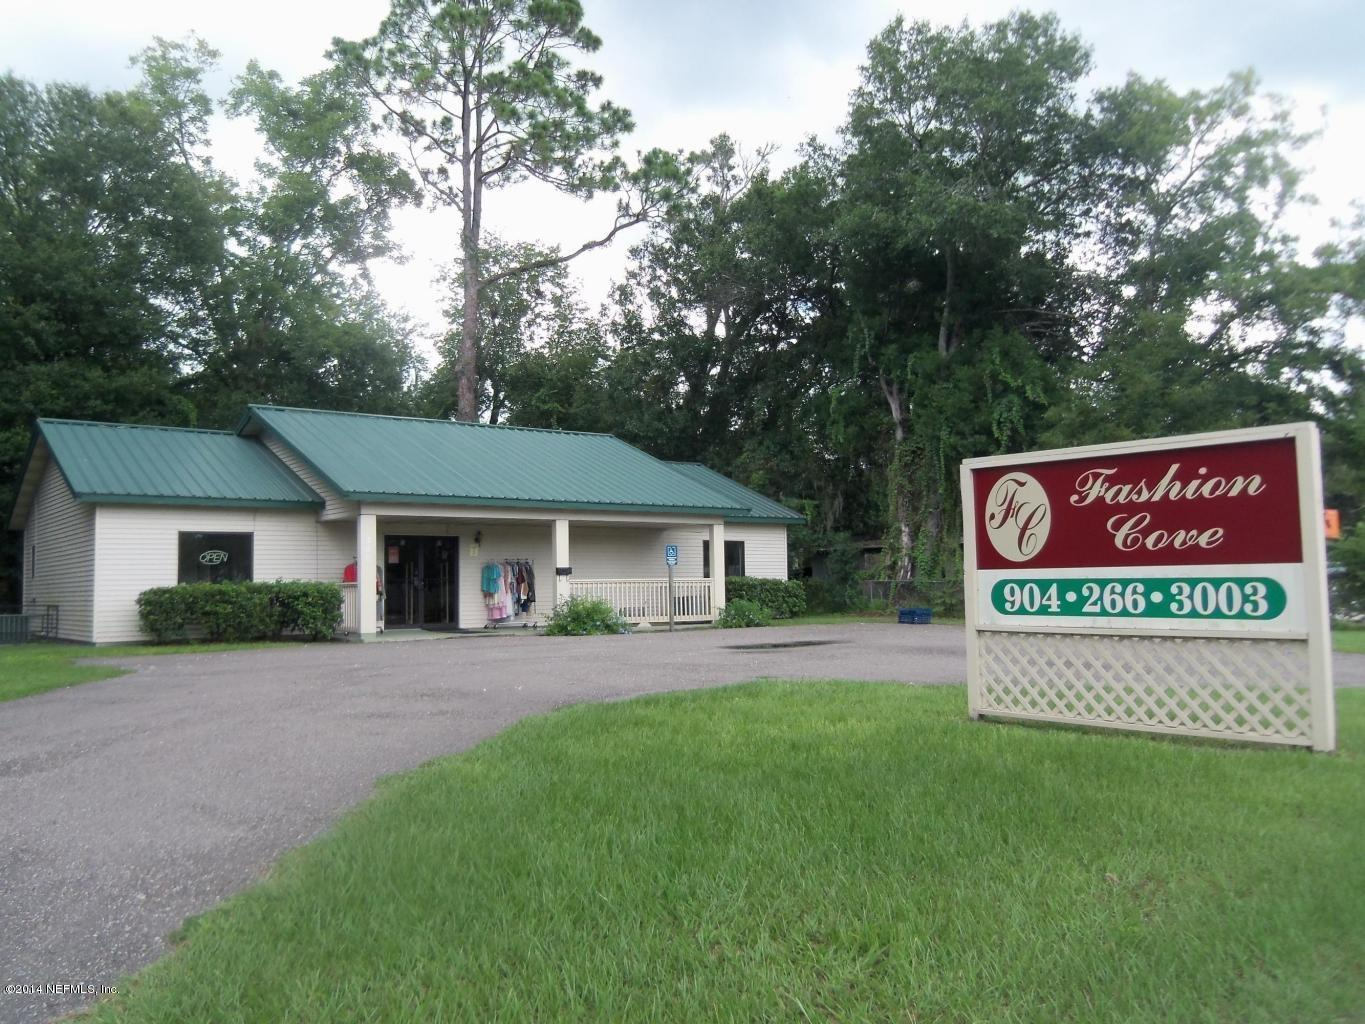 385 US HIGHWAY 90, BALDWIN, FLORIDA 32234-1717, ,Commercial,For sale,US HIGHWAY 90,740452